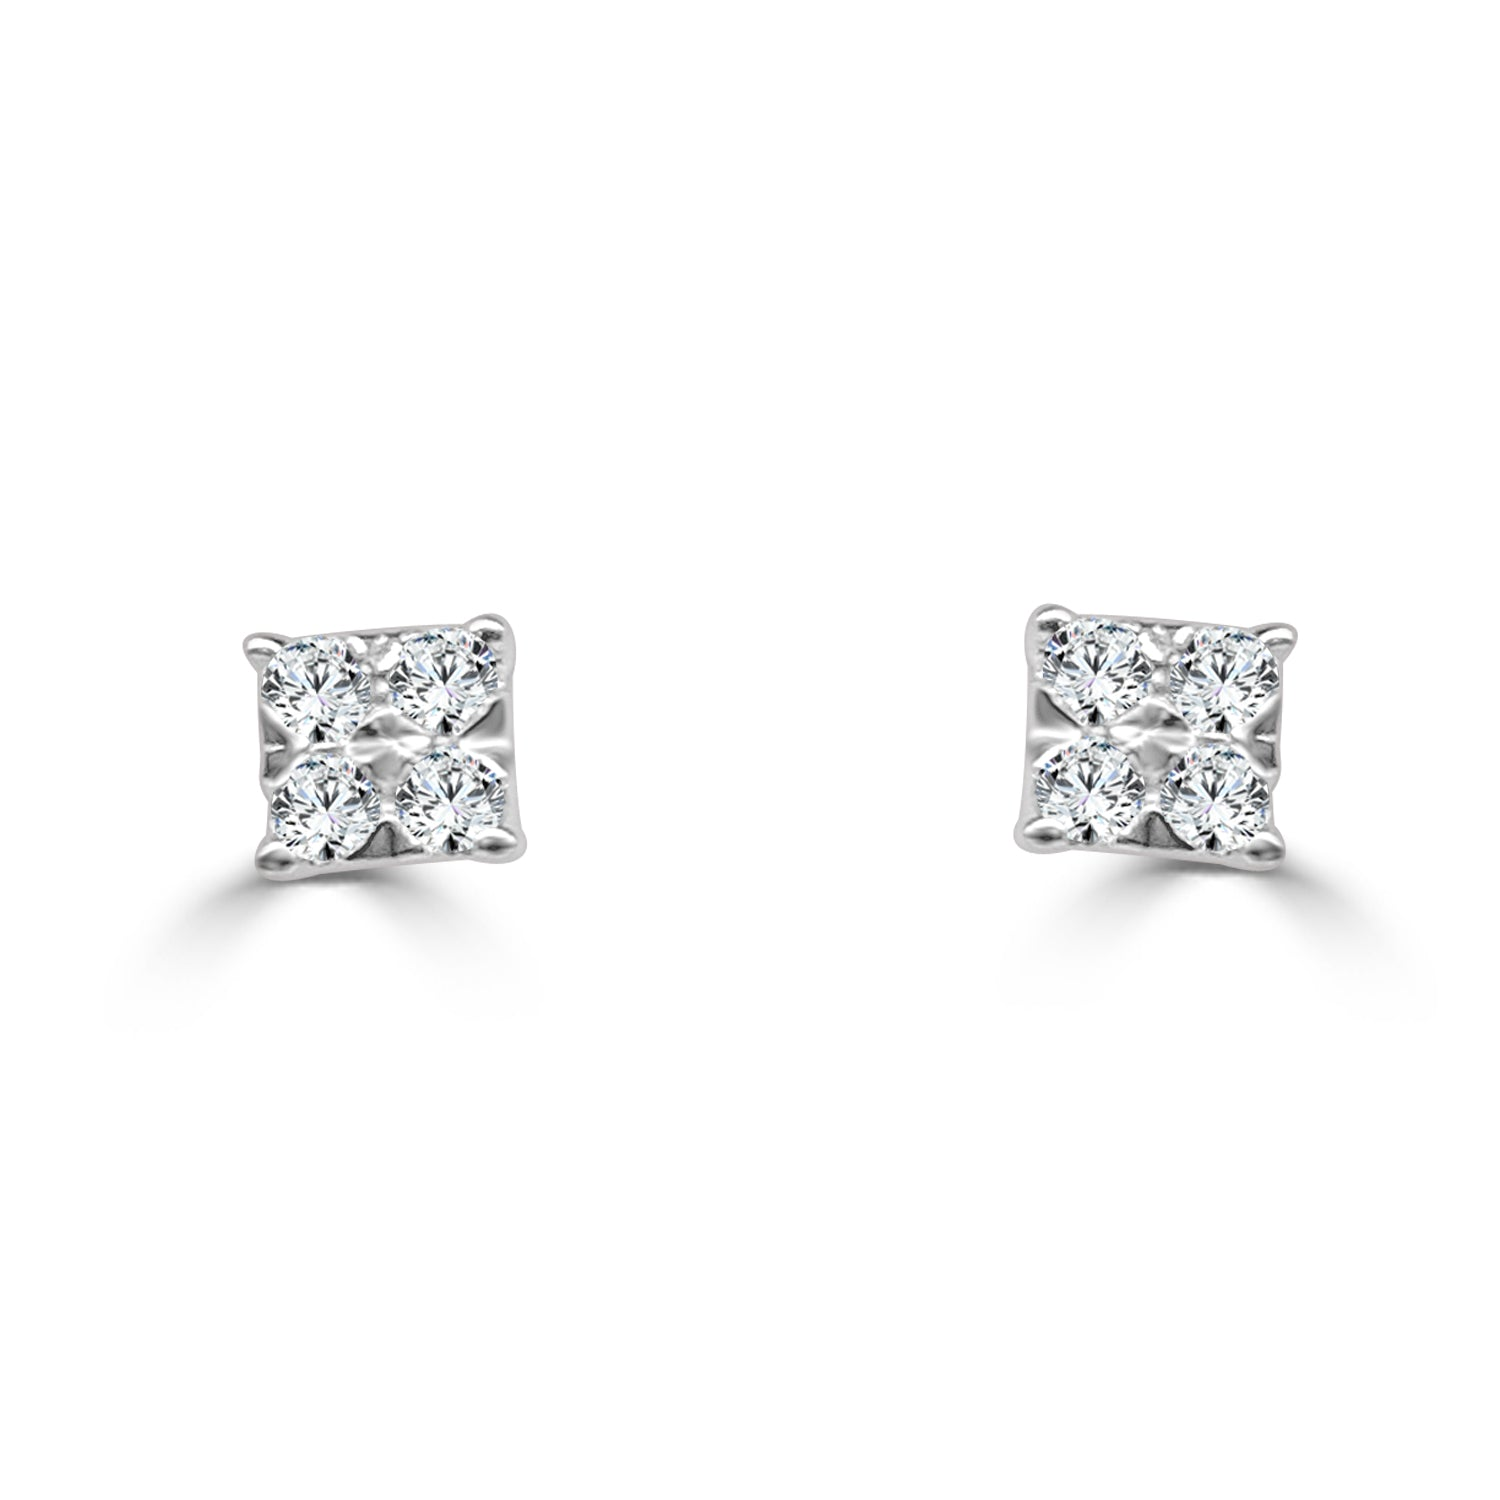 rectangular jewelry diamond earrings